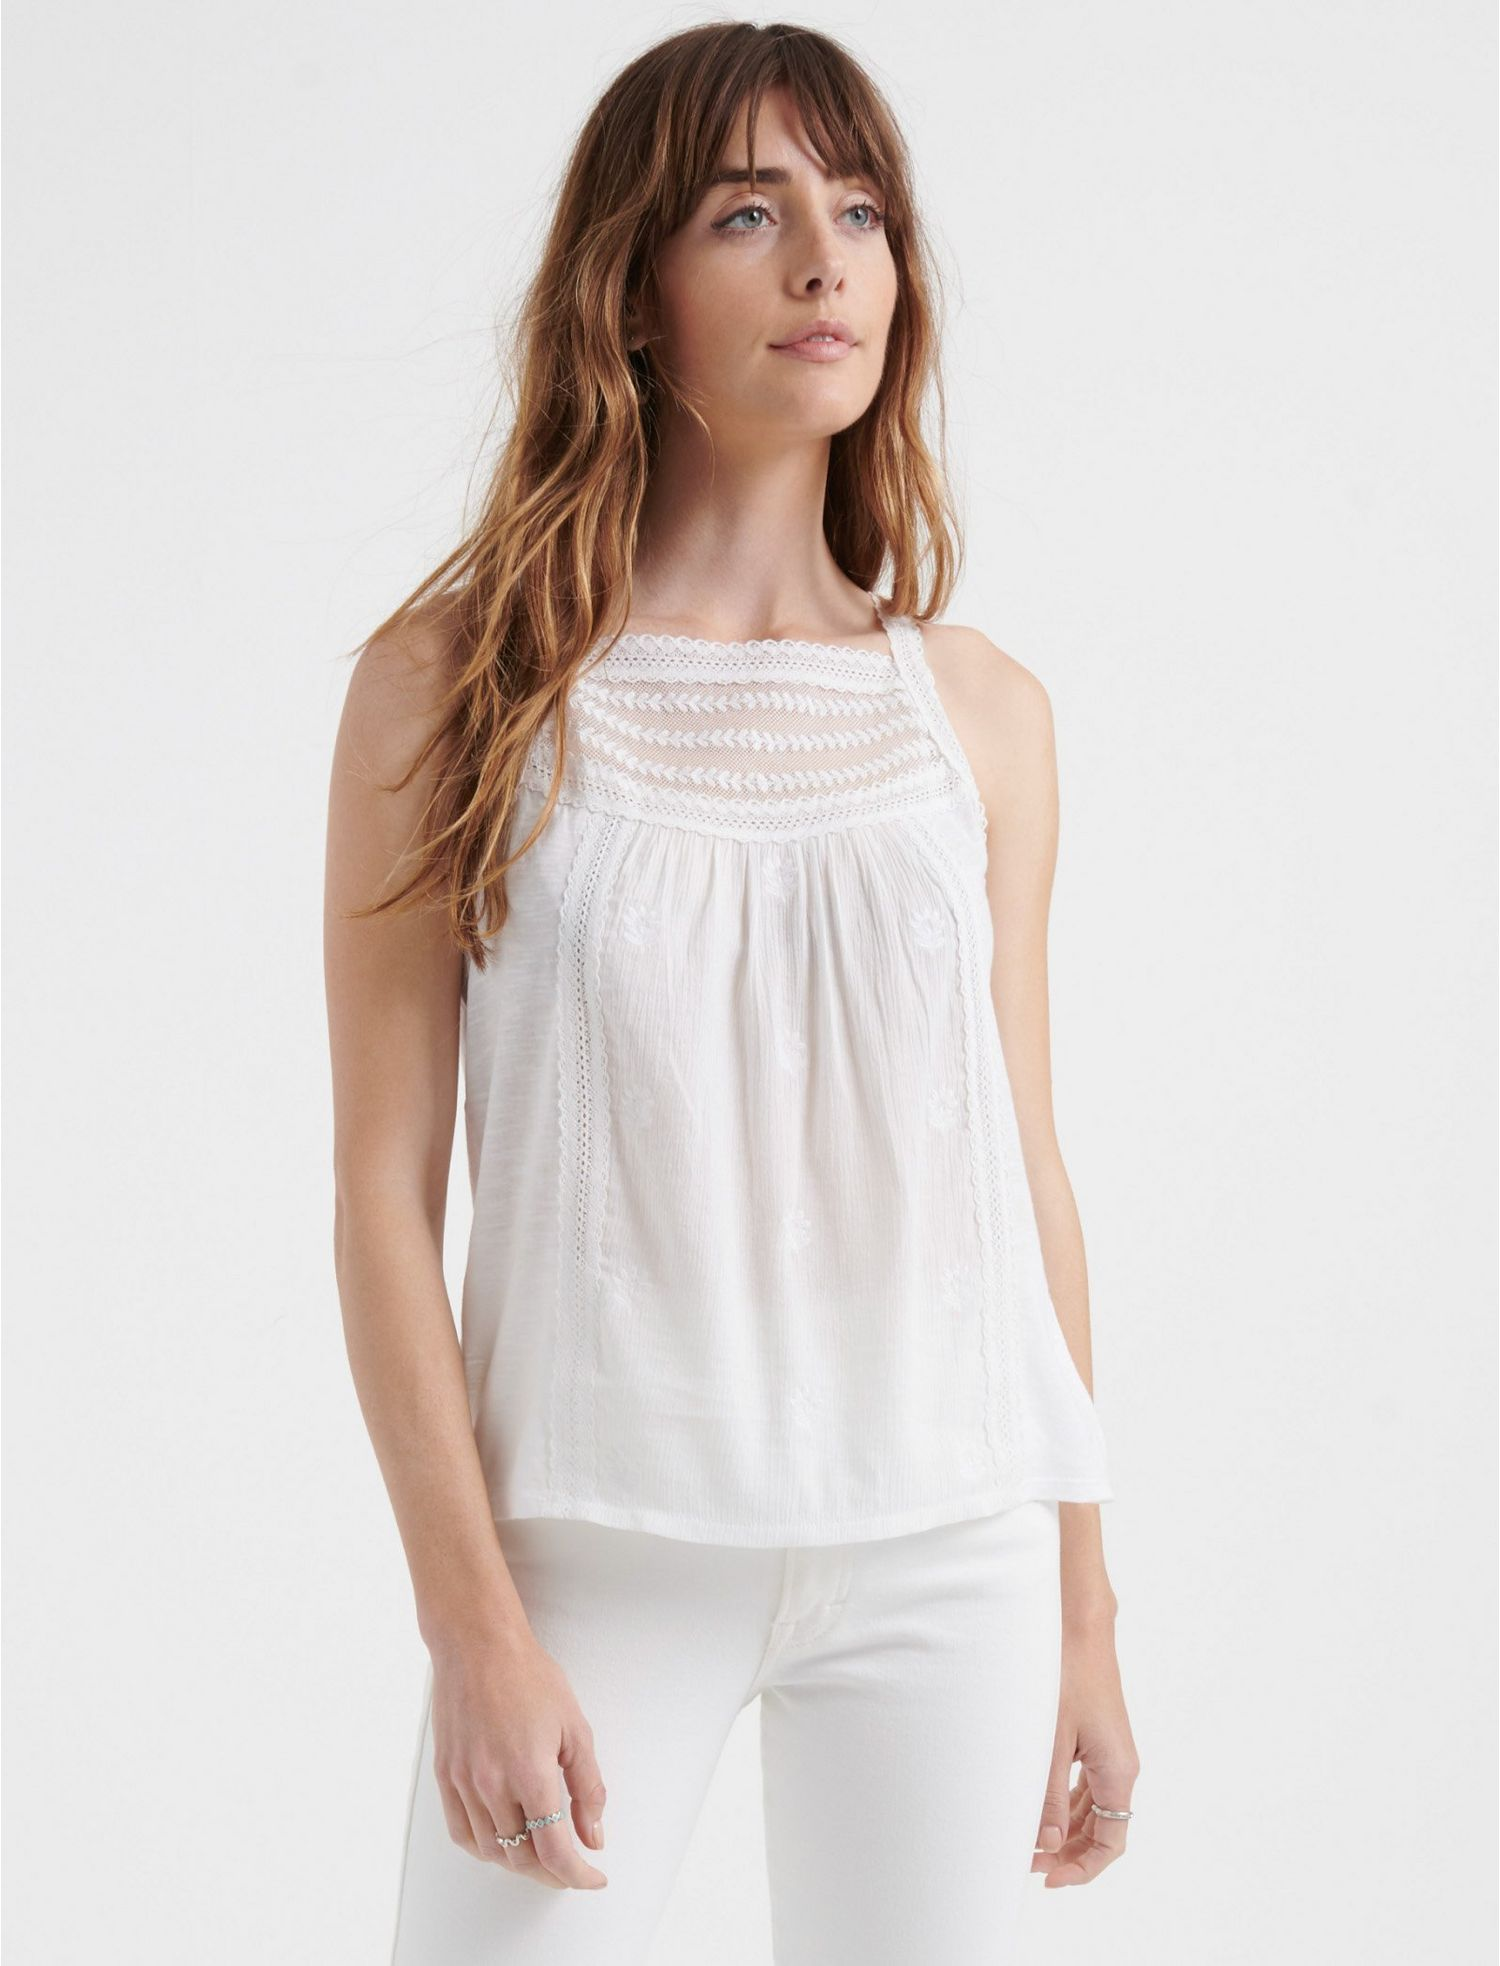 MIX-MEDIA-HIGH-NECK-HALTER-TOP-110.jpeg